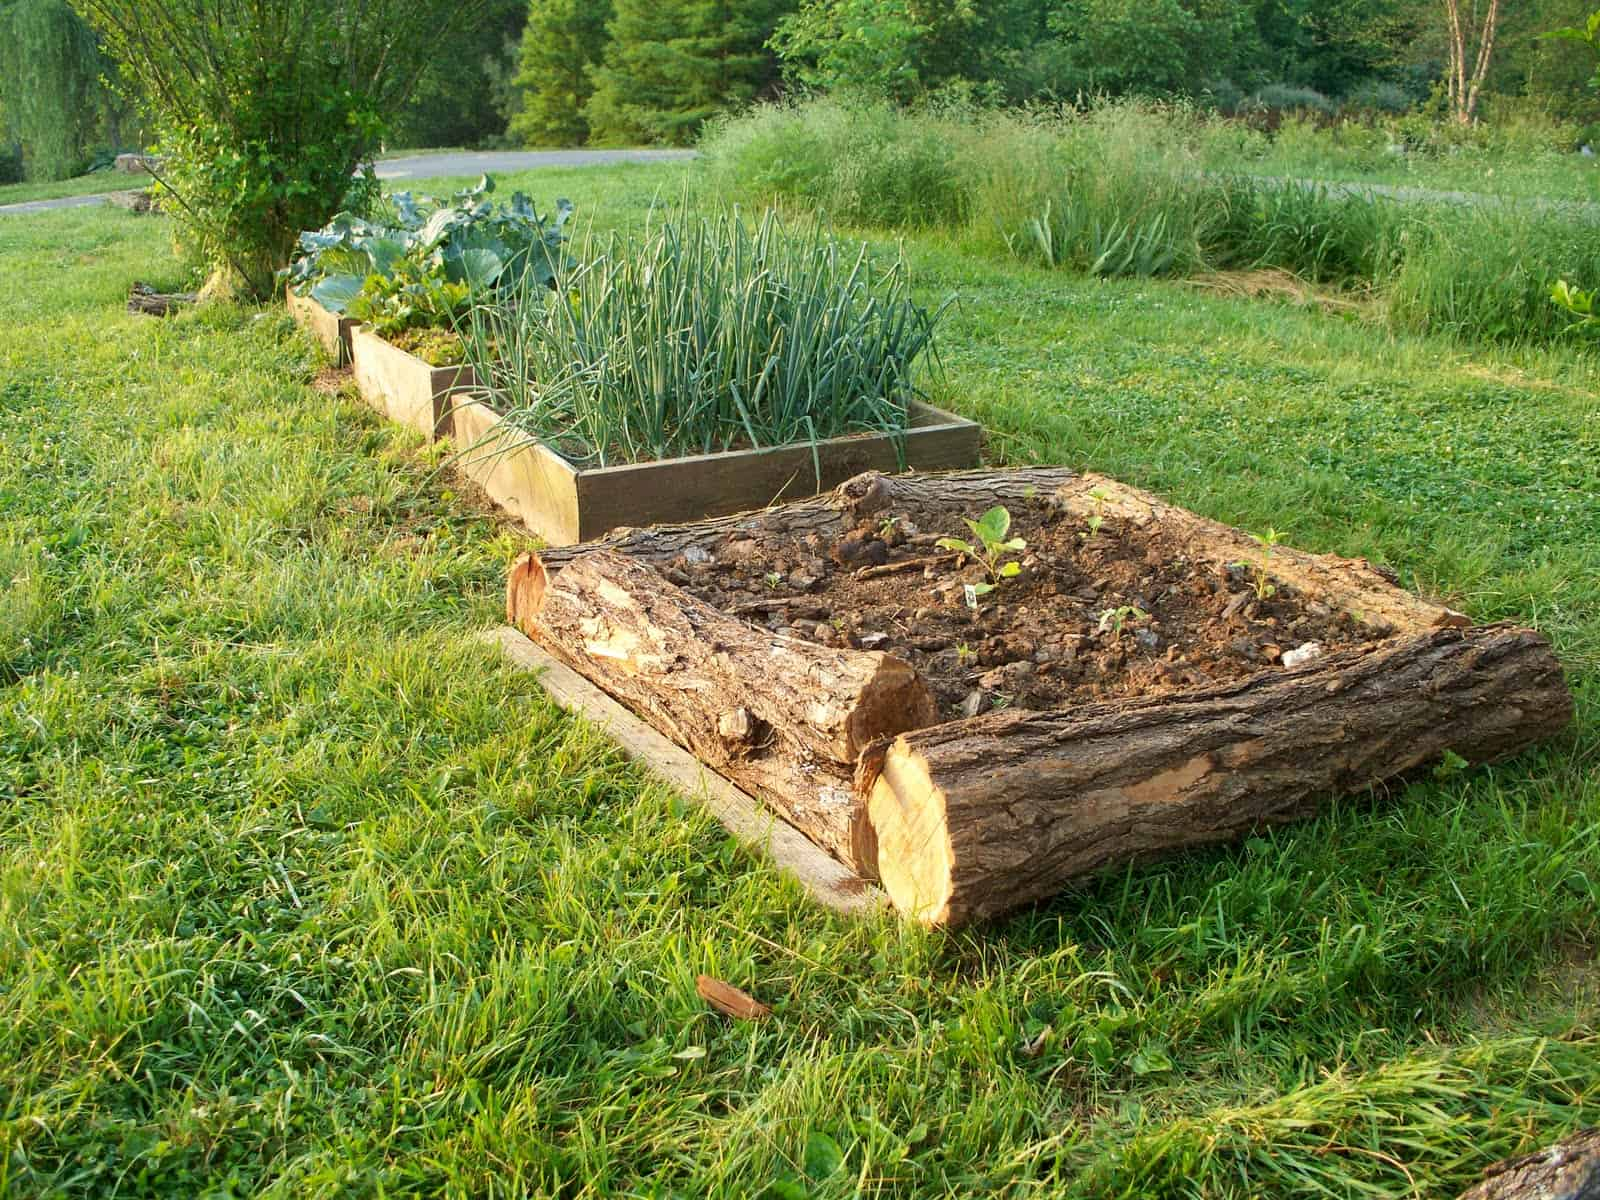 28 Amazing DIY Raised Bed Gardens - A Piece Of Rainbow on small front garden design ideas, flower bed box ideas, raised bed with bench, outdoor bench ideas, safari box ideas, thanksgiving box ideas, planter box ideas, baby box ideas, cookies box ideas, herb garden design ideas, date box ideas, recycling box ideas, unique container garden ideas, christmas box ideas, backyard herb garden ideas, travel box ideas, tree box ideas, camping box ideas, dessert box ideas, recipe box ideas,